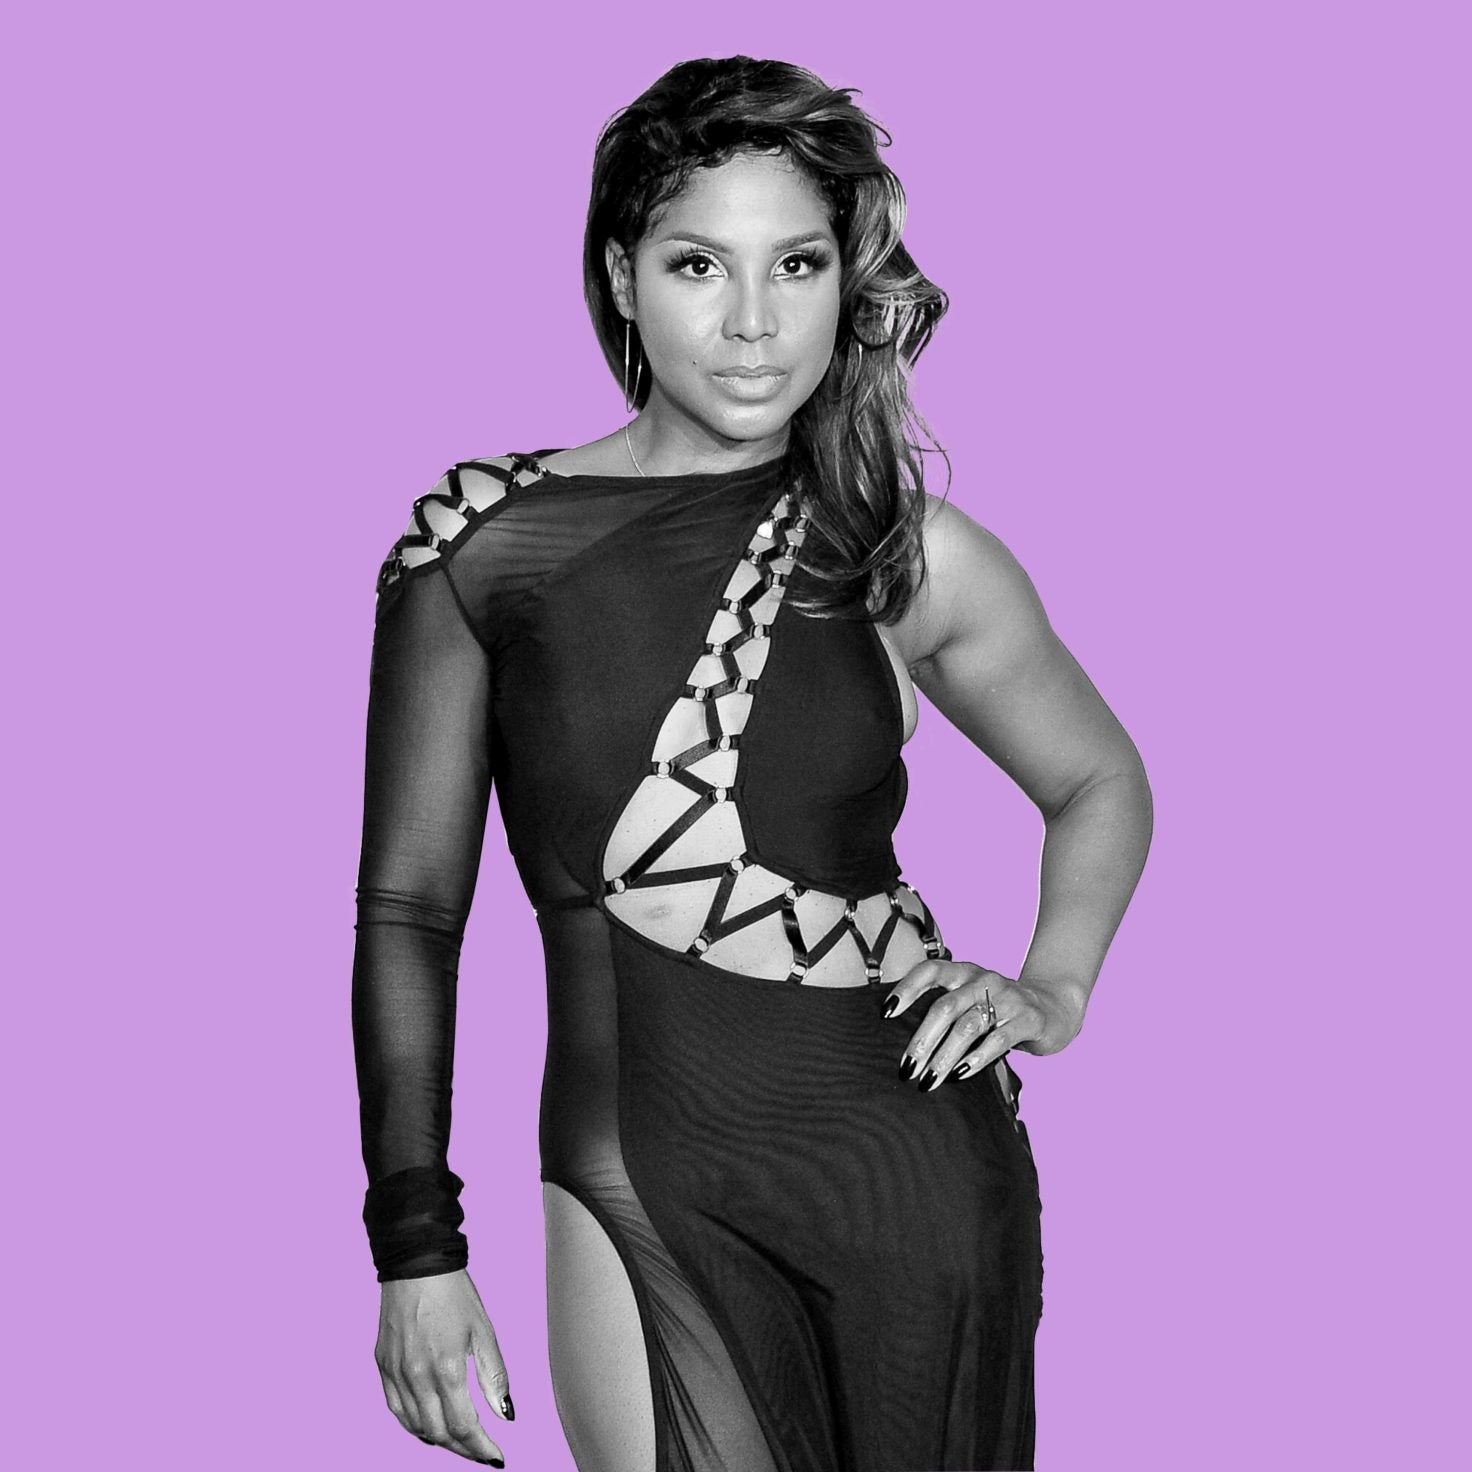 Toni Braxton And SWV Are Going On Tour Next Year